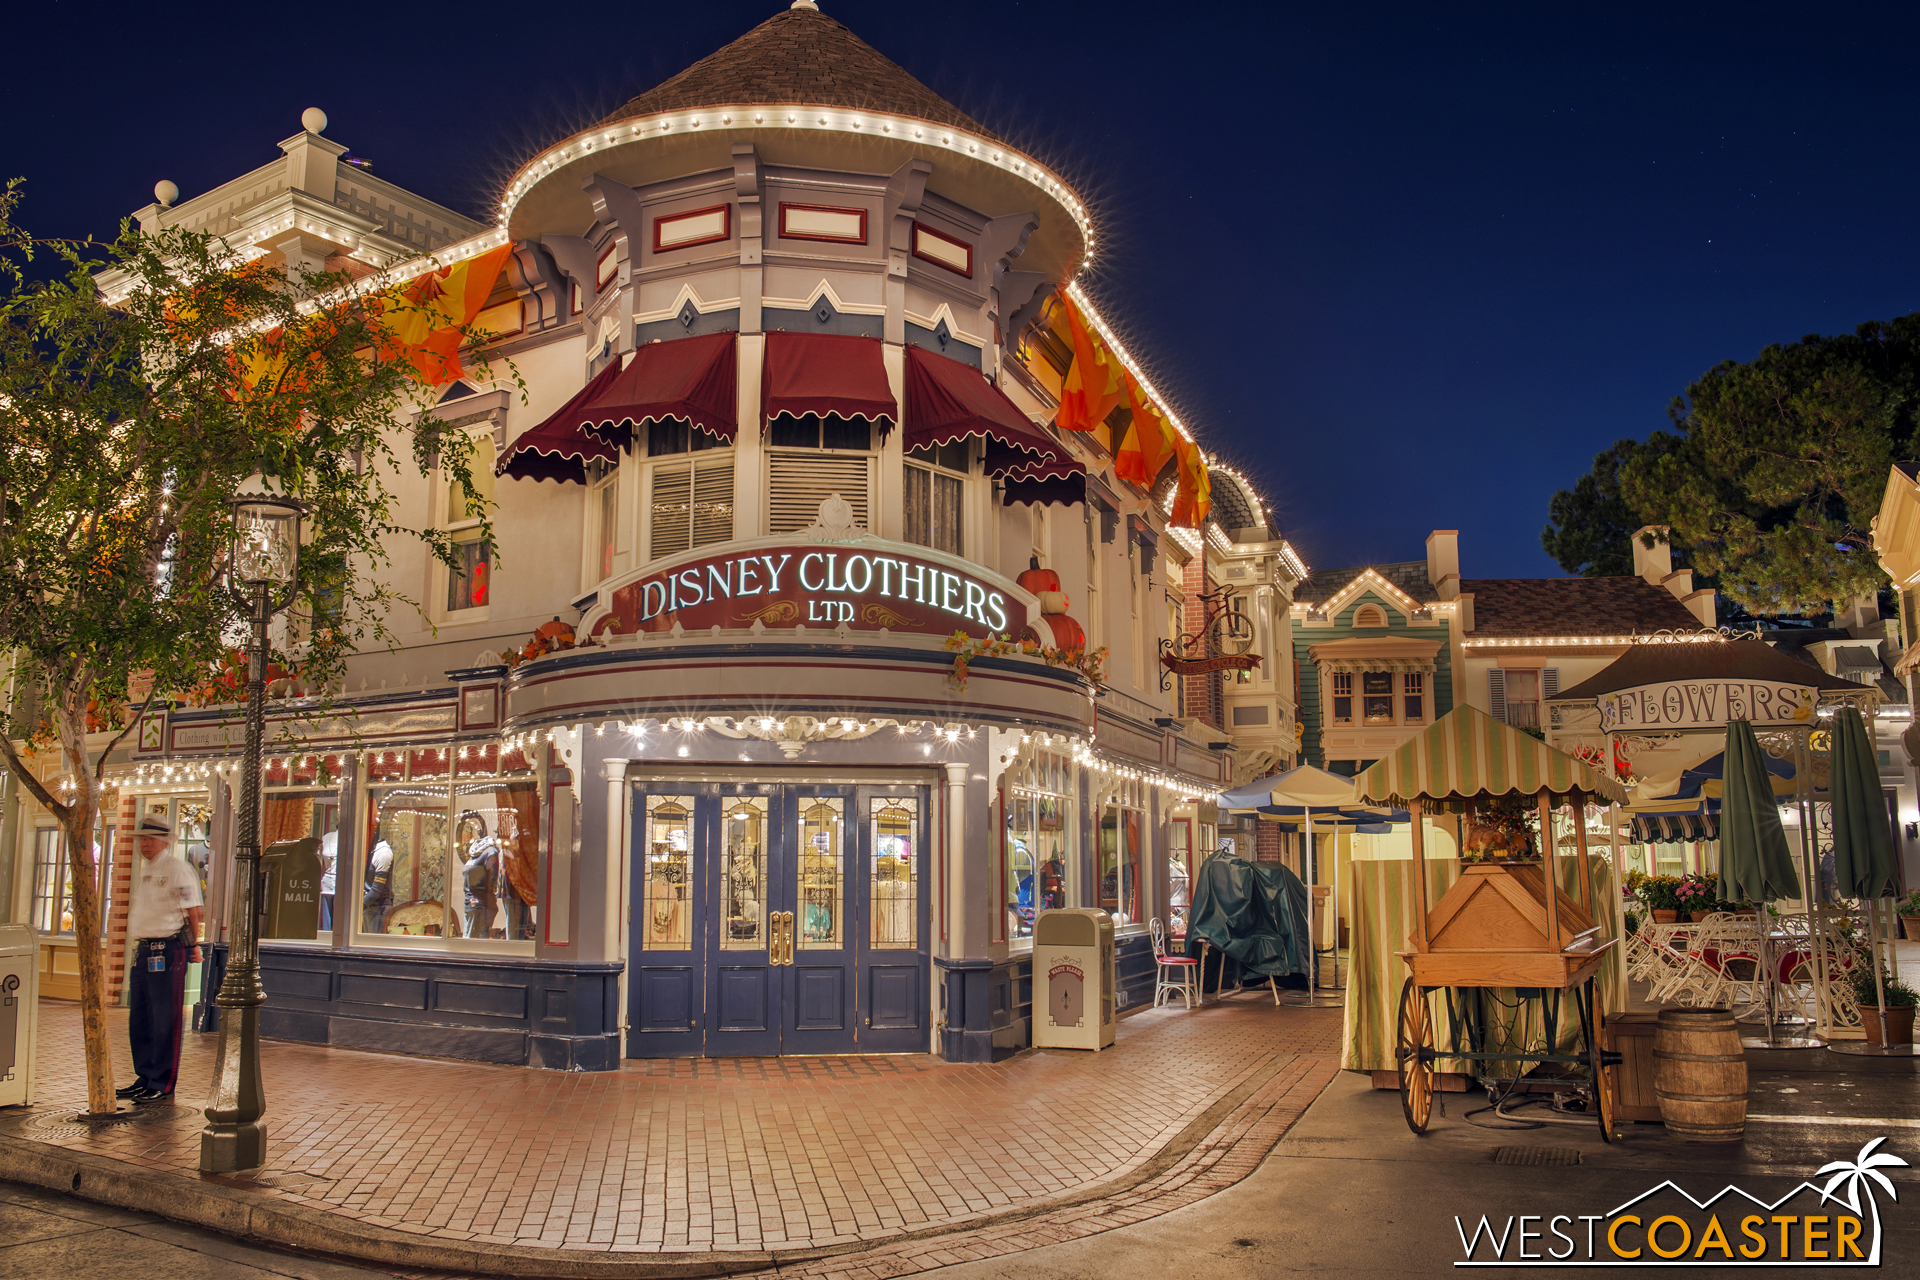 Then across the east side and Disney Clothiers.